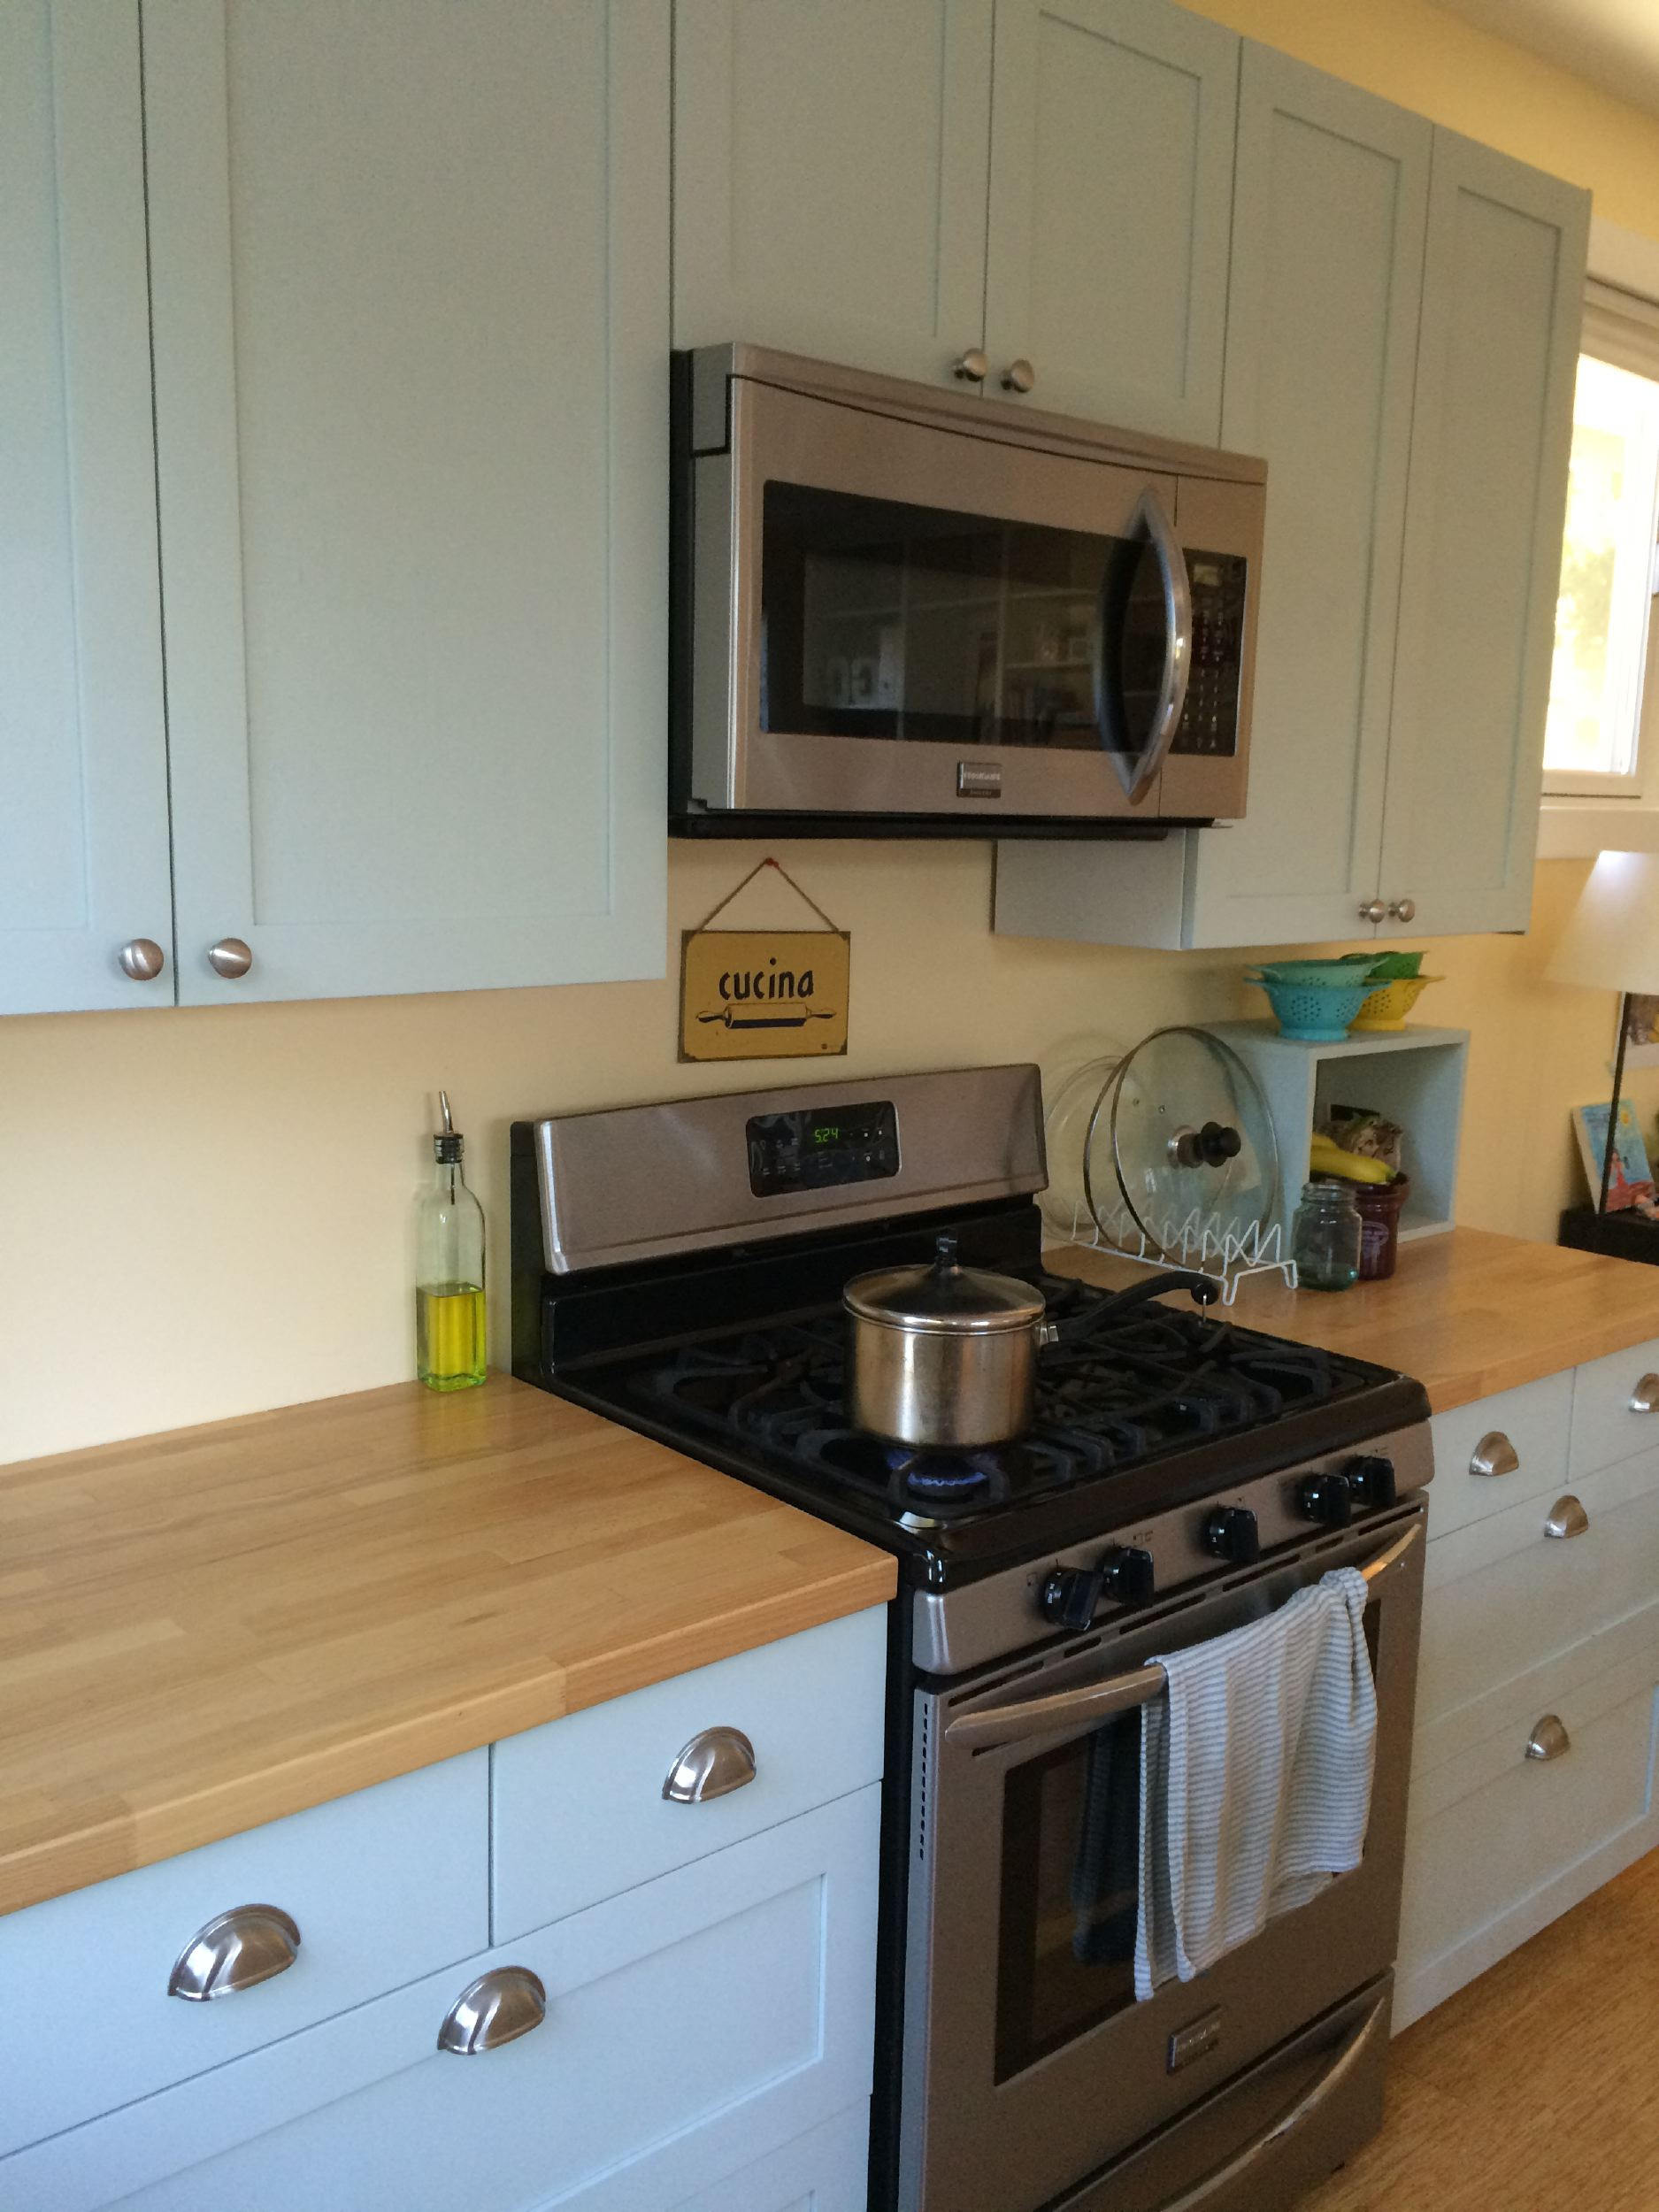 Cost Of New Cabinet Doors Inspirational How We Painted Our Ikea Kitchen Cabinets – Shirley & Chris